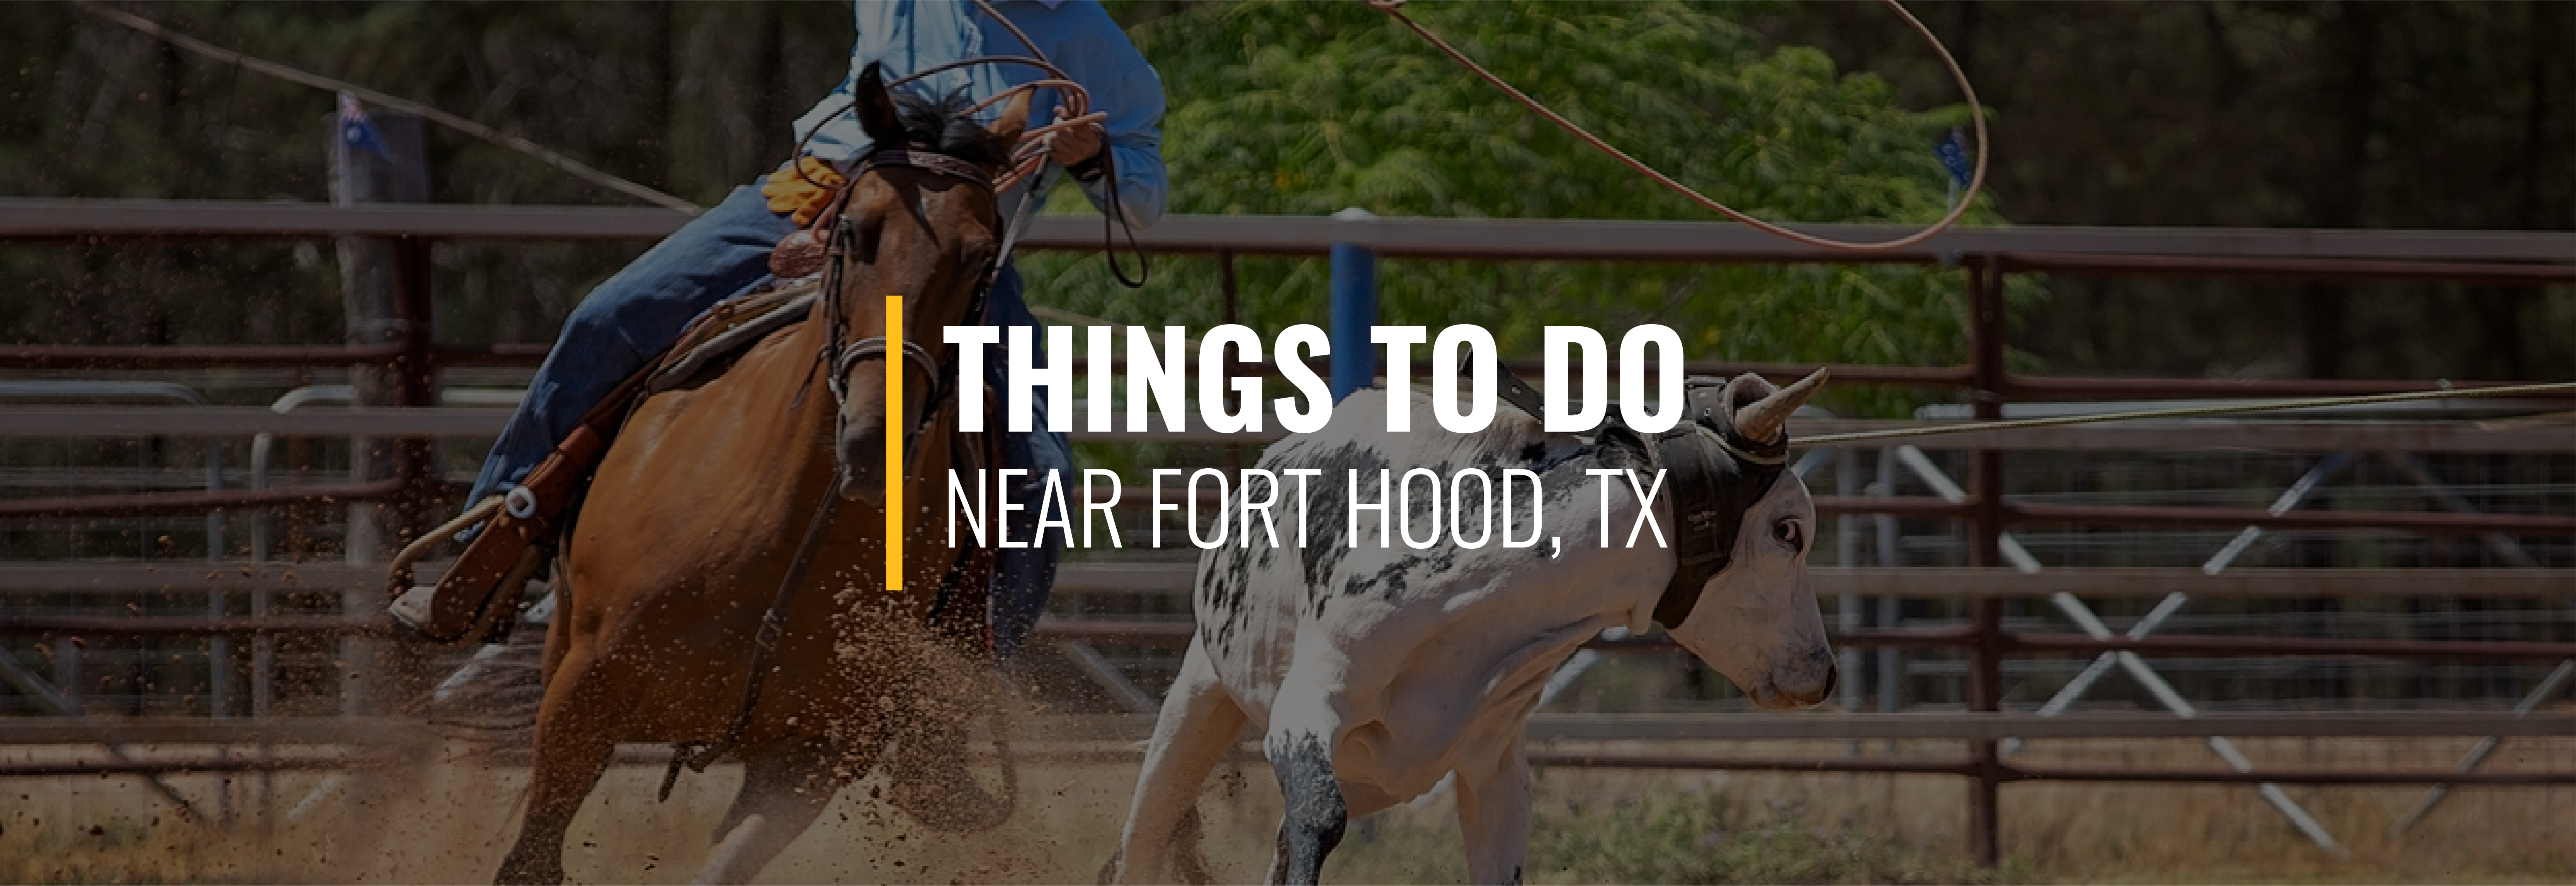 Things to Do At Fort Hood